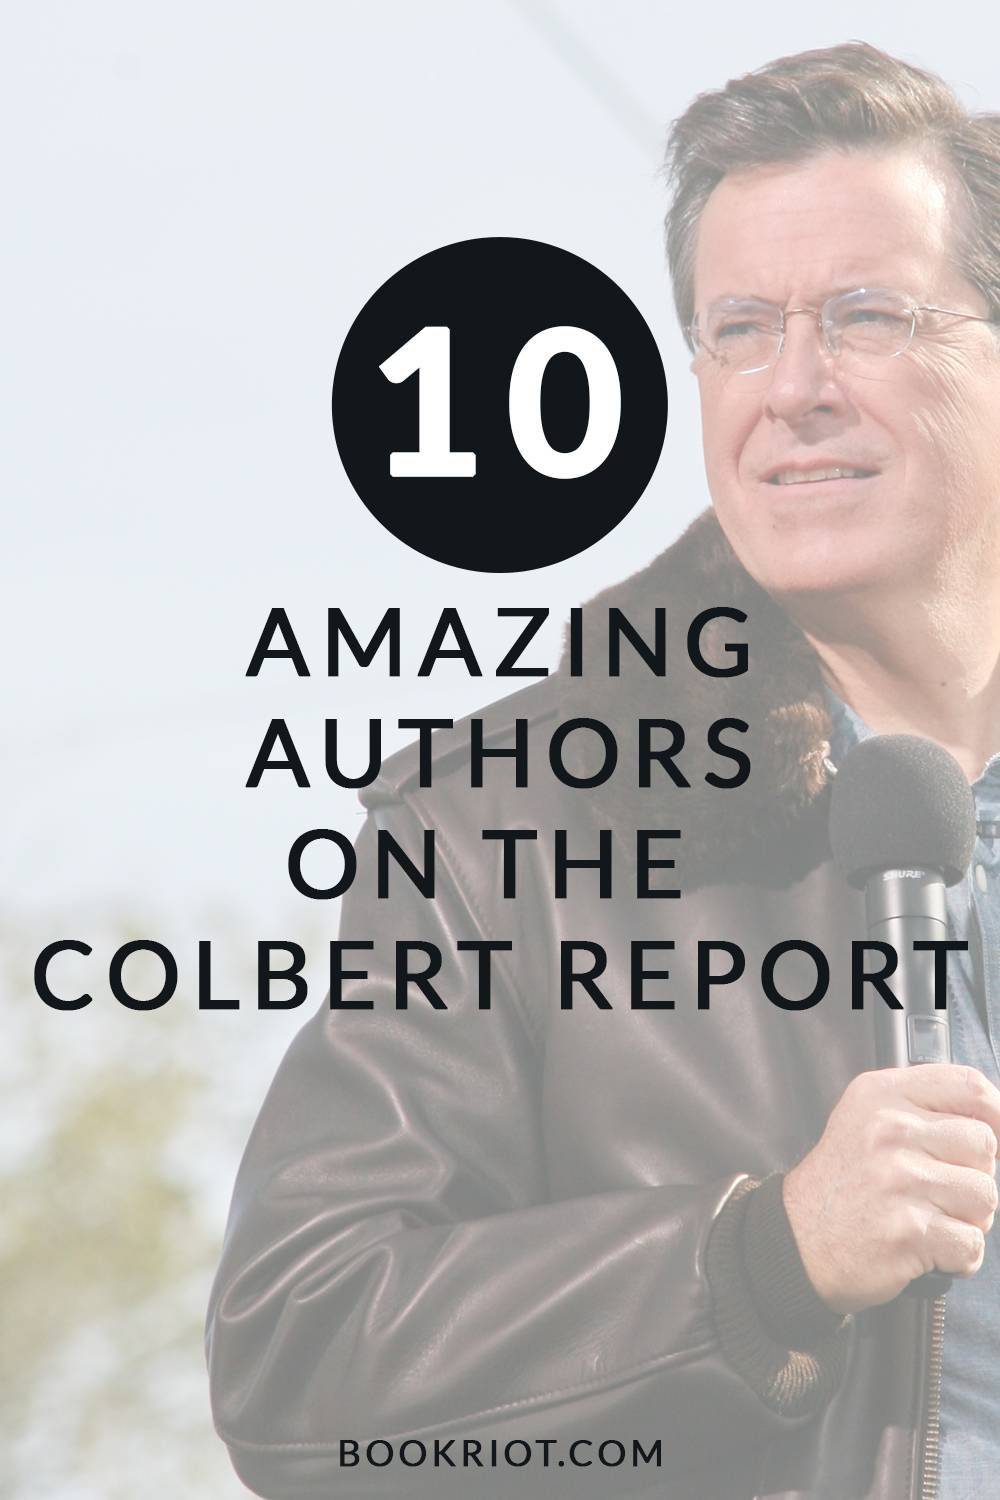 Toni Morrison, Malcolm Gladwell, Ann Patchett, + 7 more amazing author appearances on The Colbert Report!